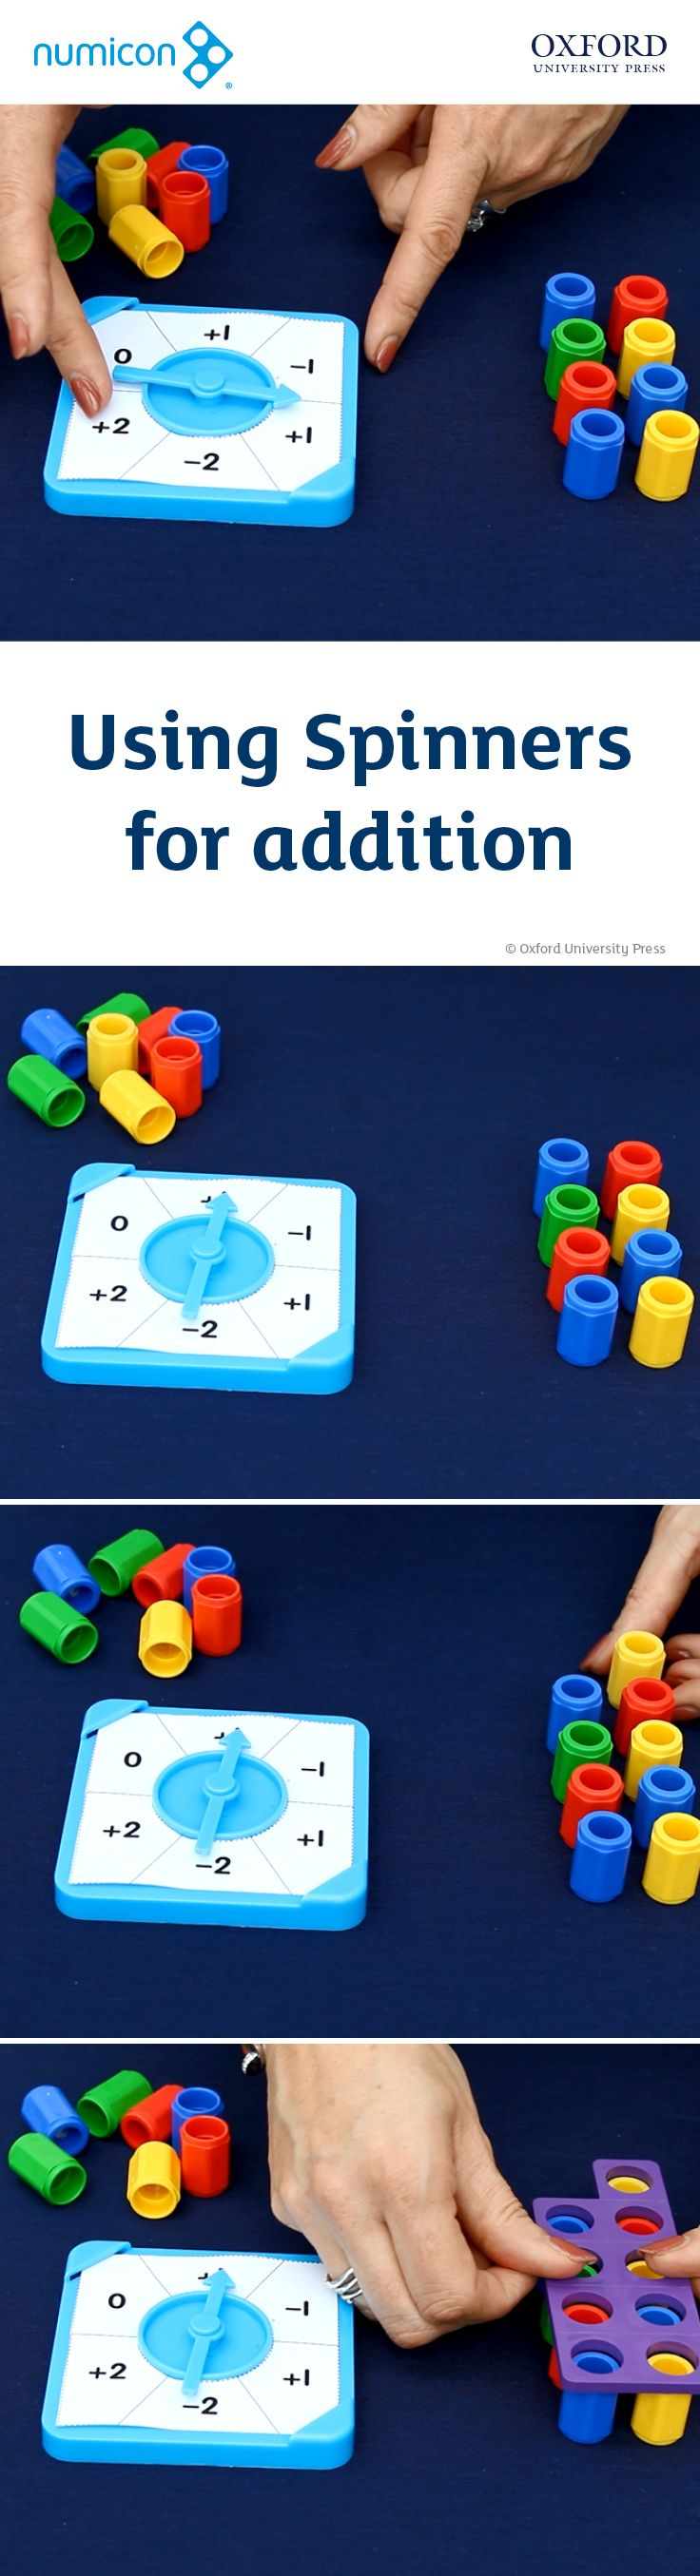 Video: How to use the Numicon Spinners for addition. Find out more about Manipulatives at www.oxfordprimary.co.uk/manipulatives. Explore and purchase Numicon resources at www.oxfordprimary.co.uk/numicon. #numicon